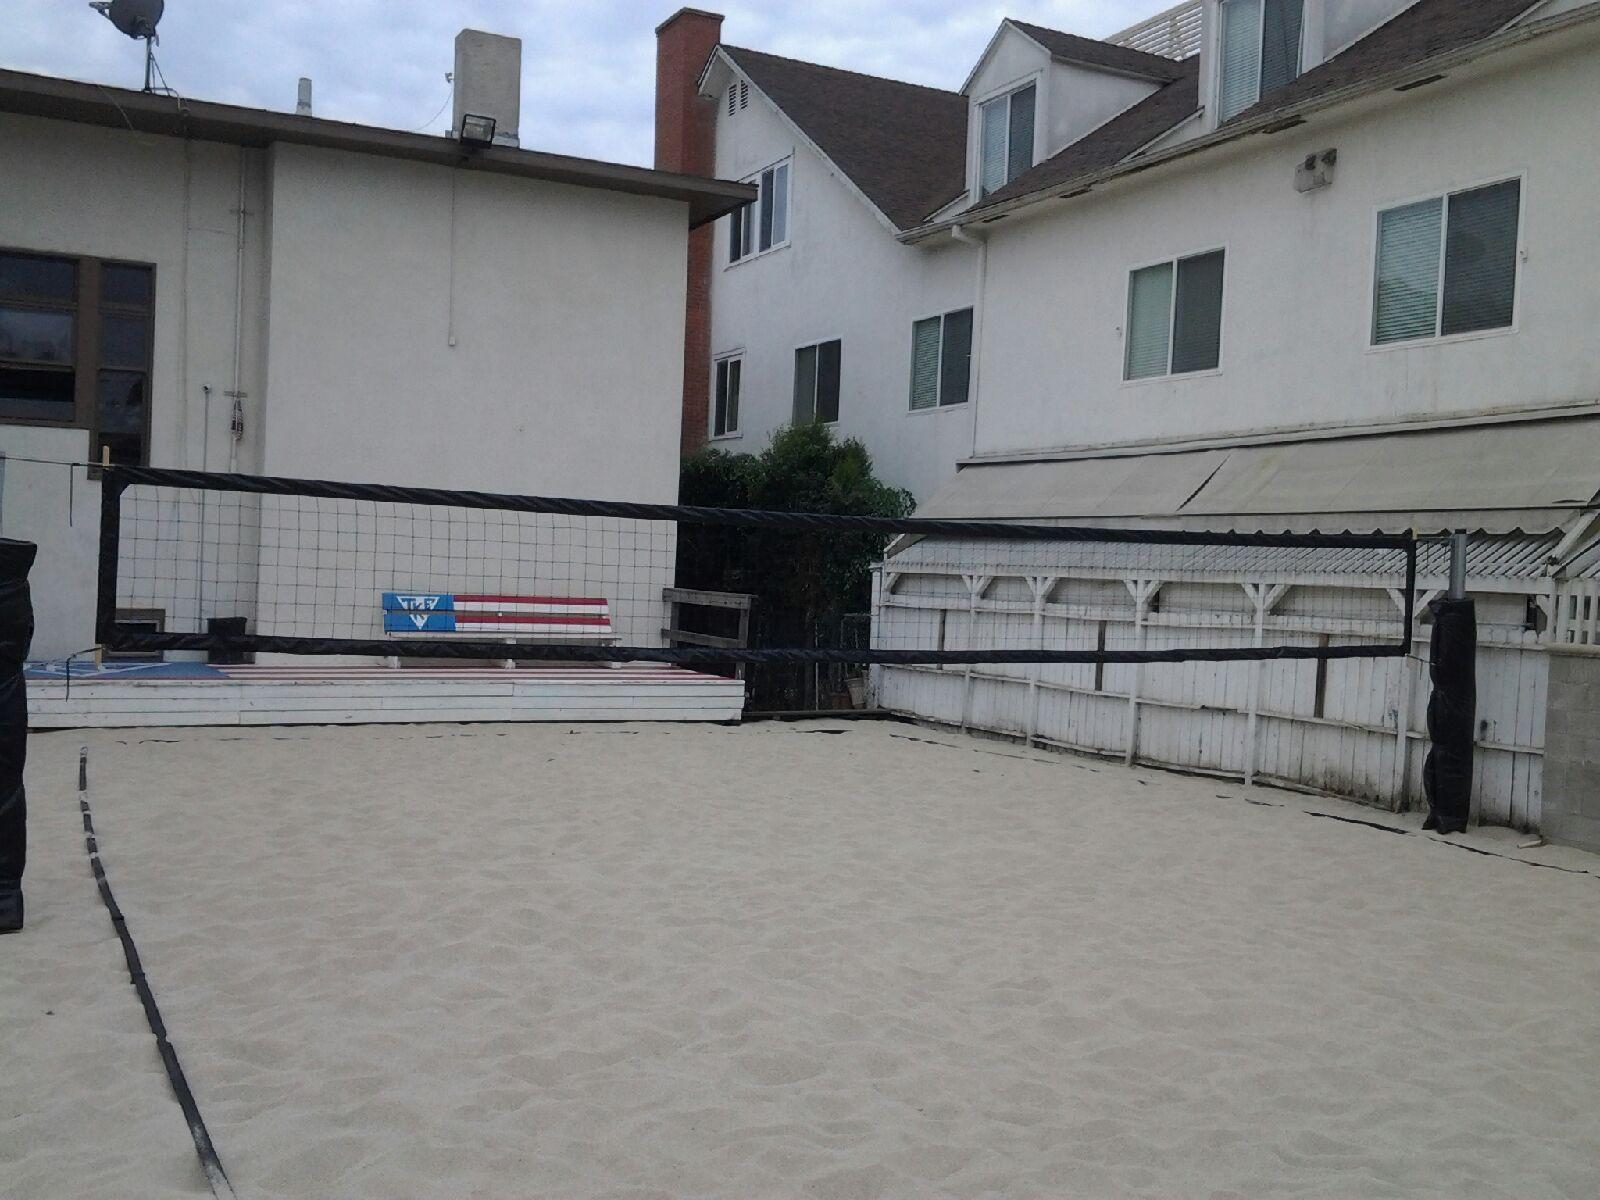 New TKE Volleyball Court 3